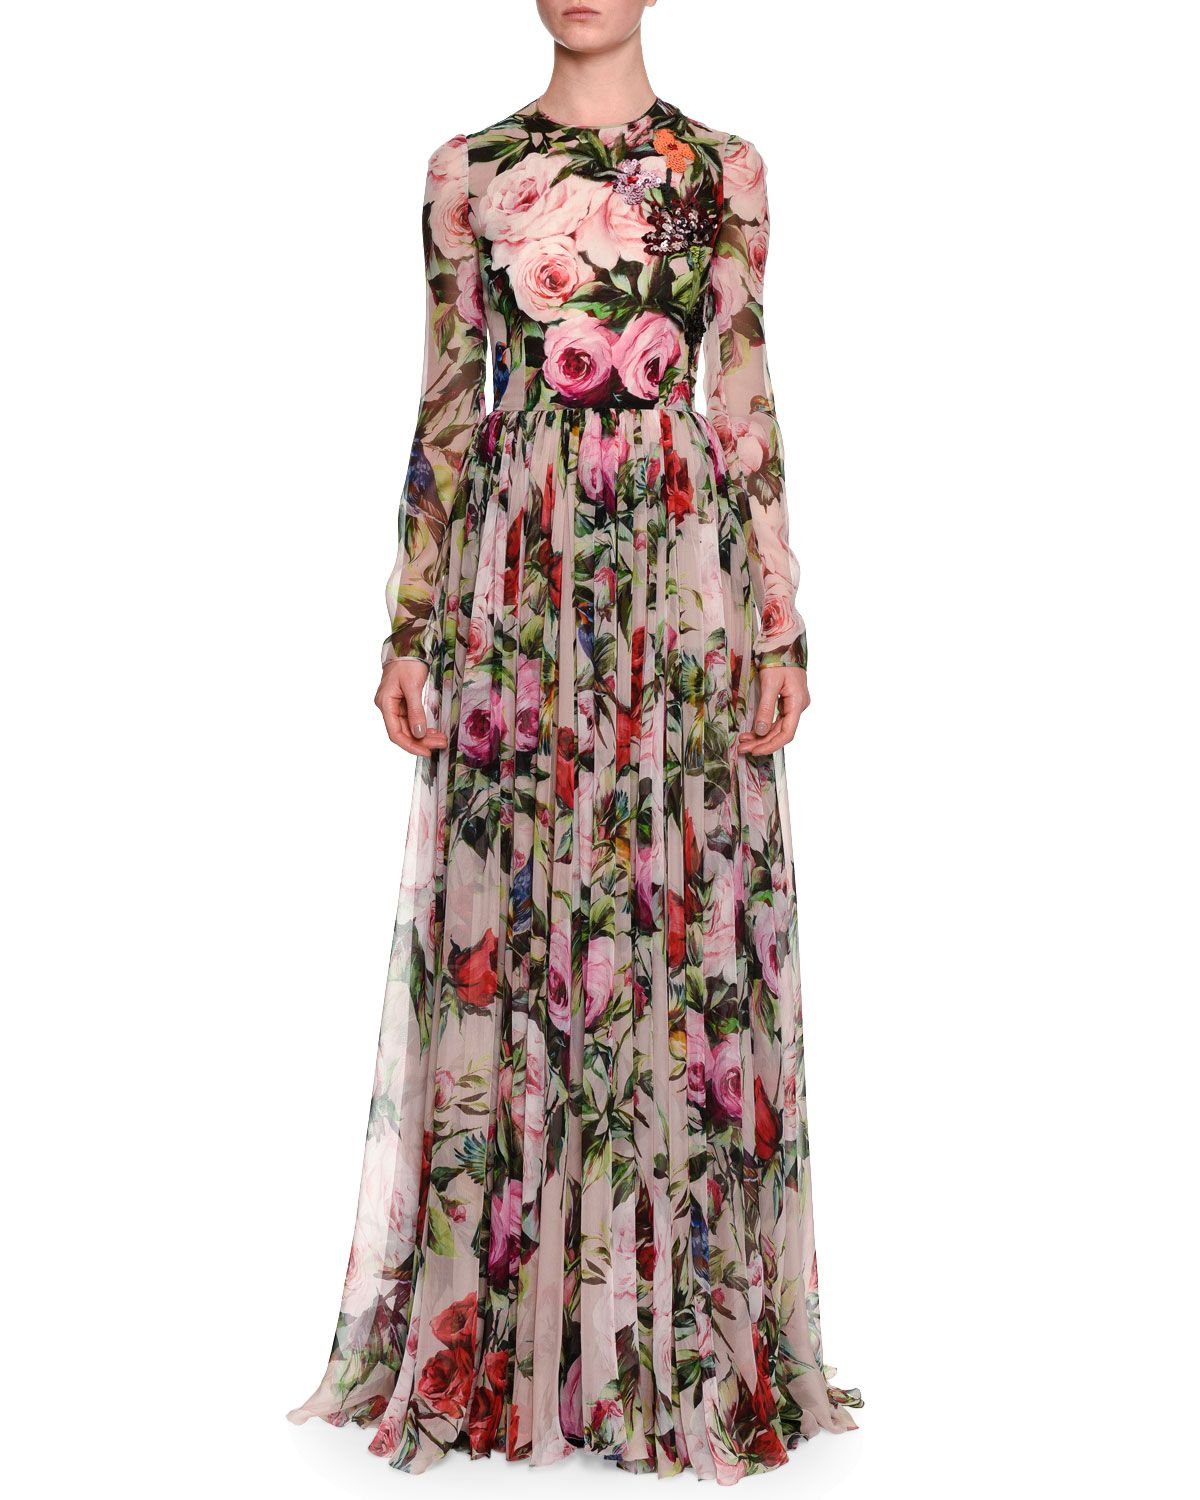 7a0c69ef977 Long-Sleeve Rose-Print Gown Pale Pink/Multi in 2019 | *Clothing ...